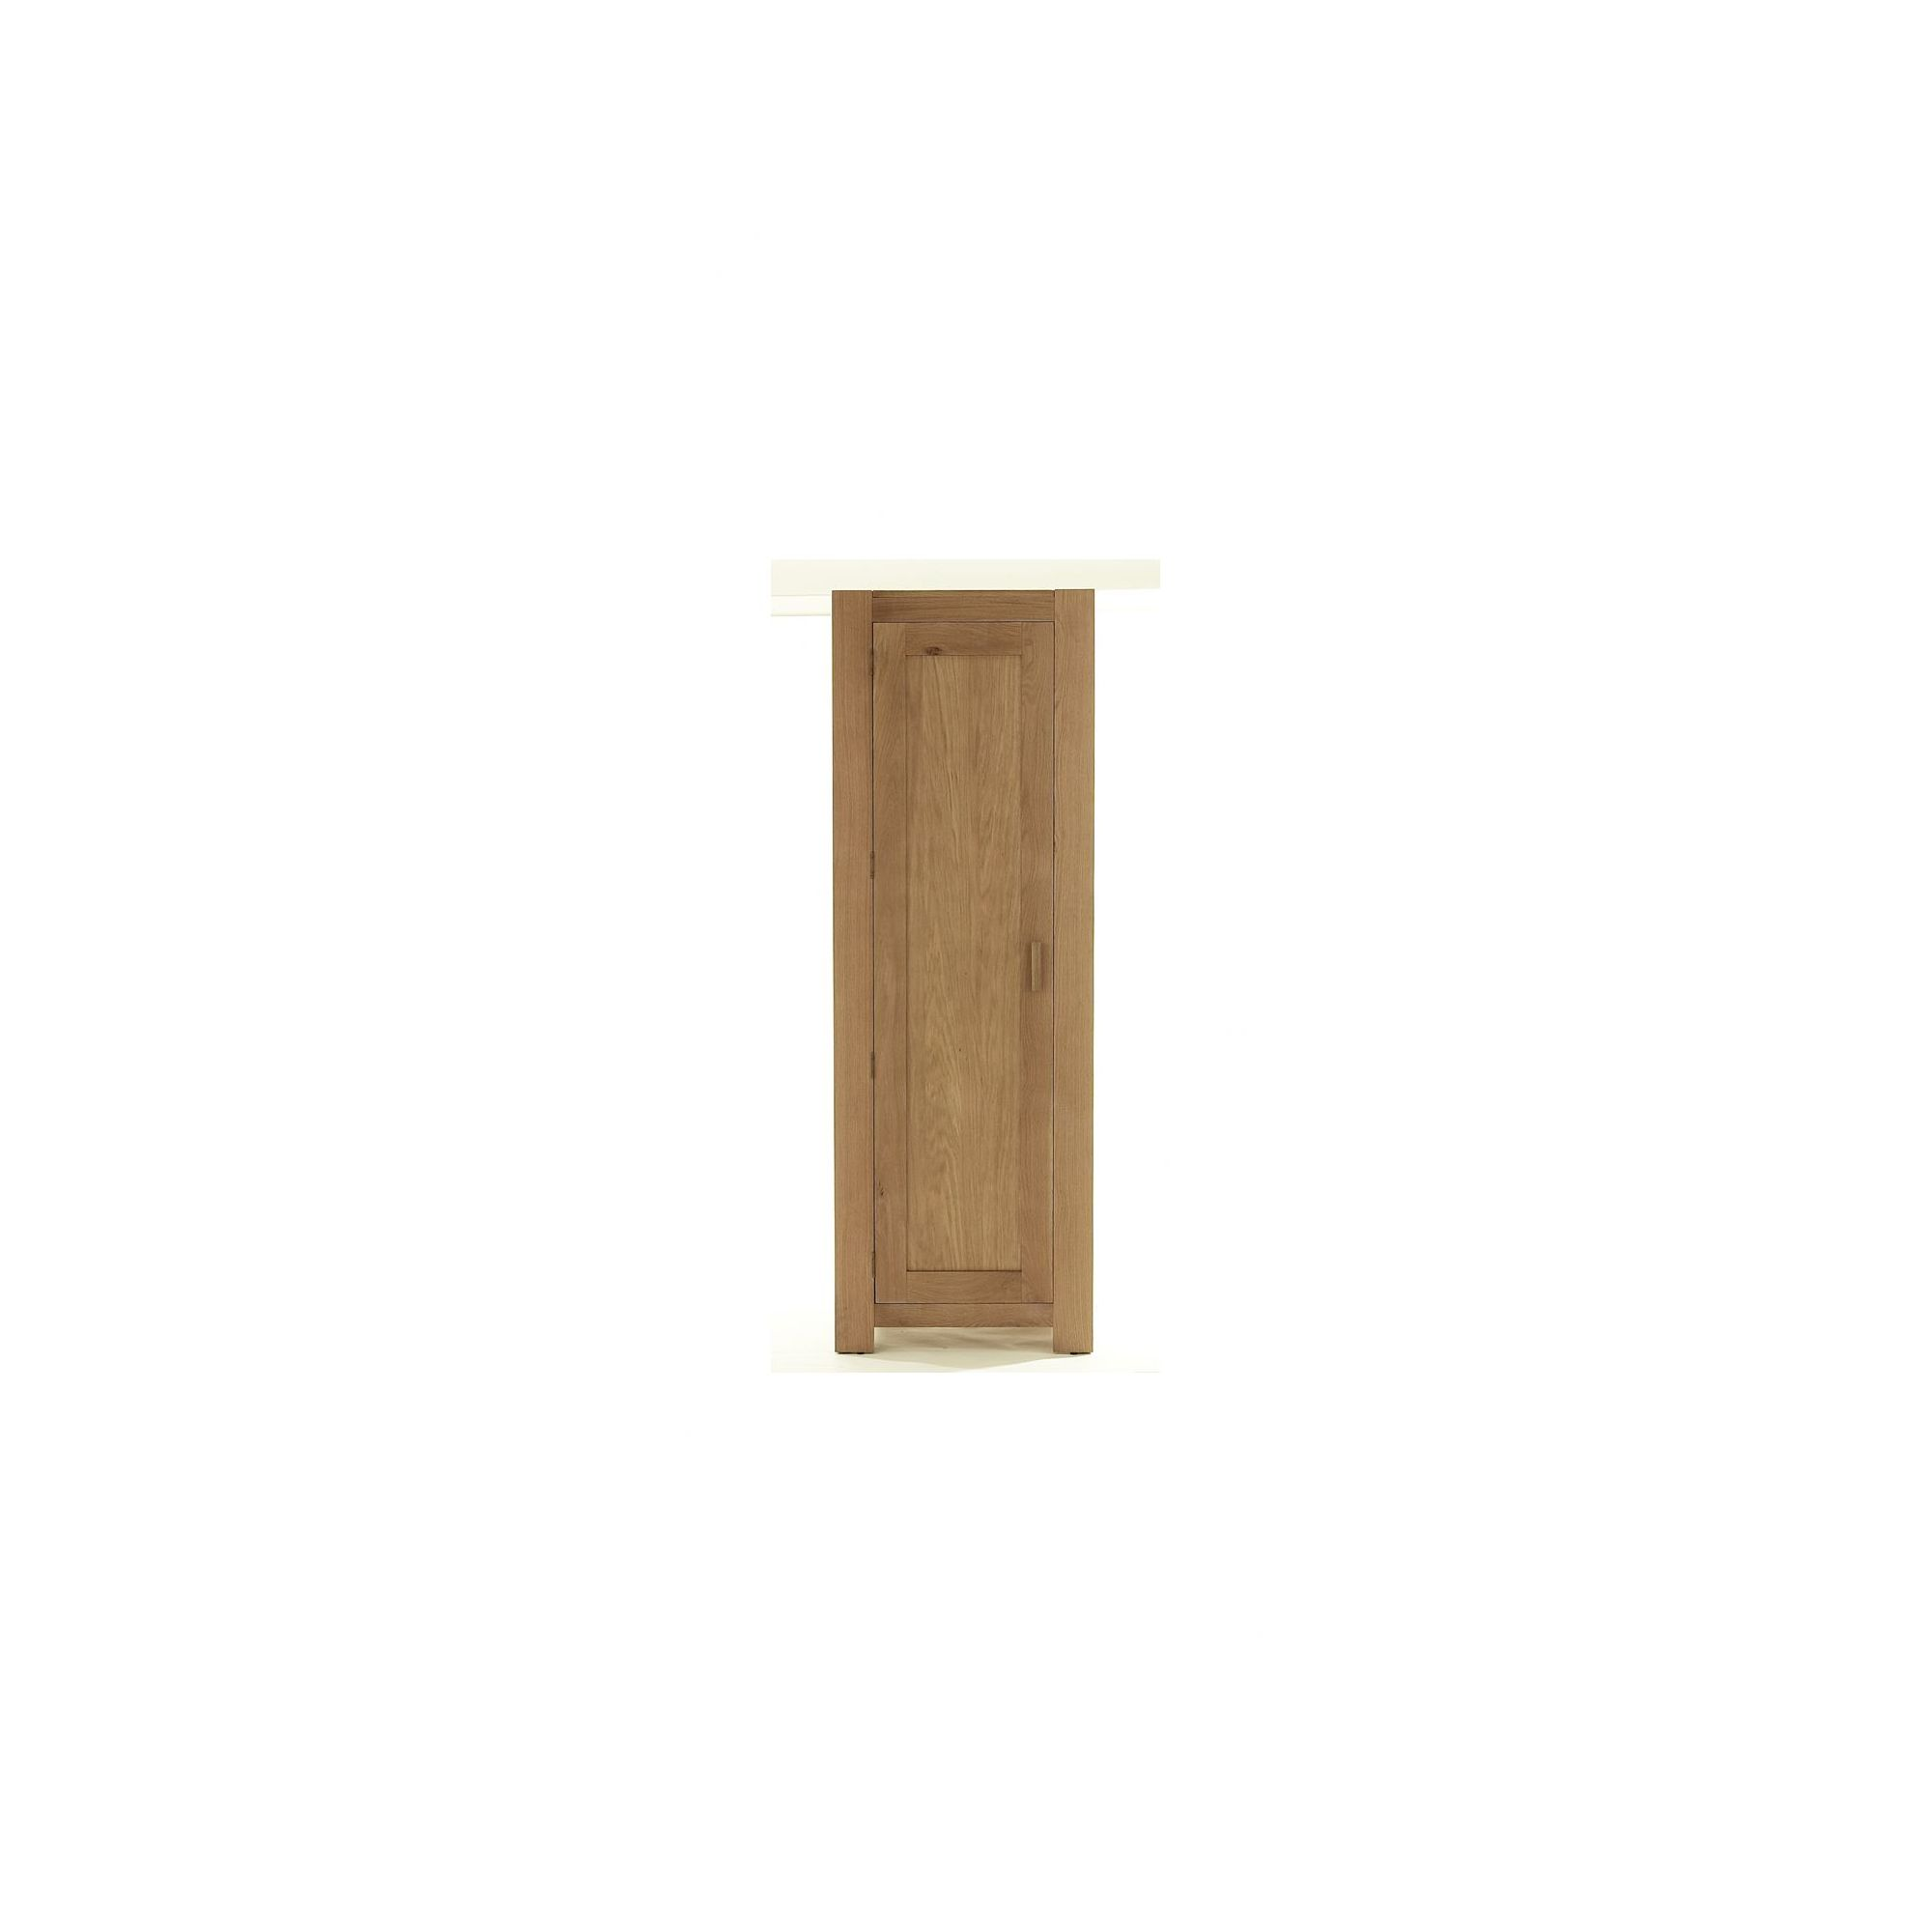 Thorndon Block Bedroom Single Wardrobe in Natural Matured Oak at Tesco Direct